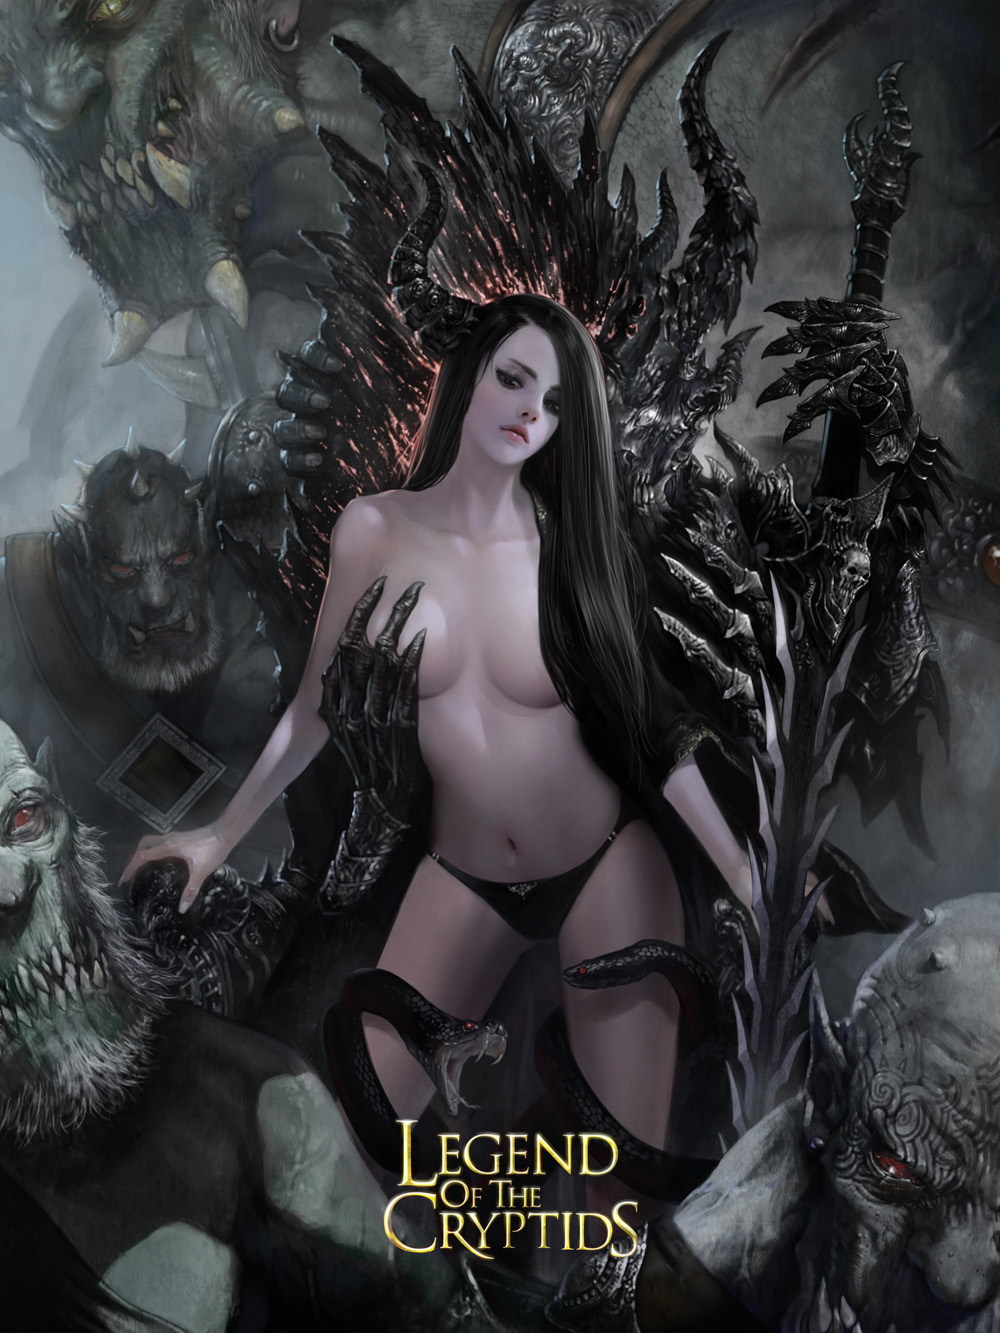 White snake and the sorceress nude sexual comic